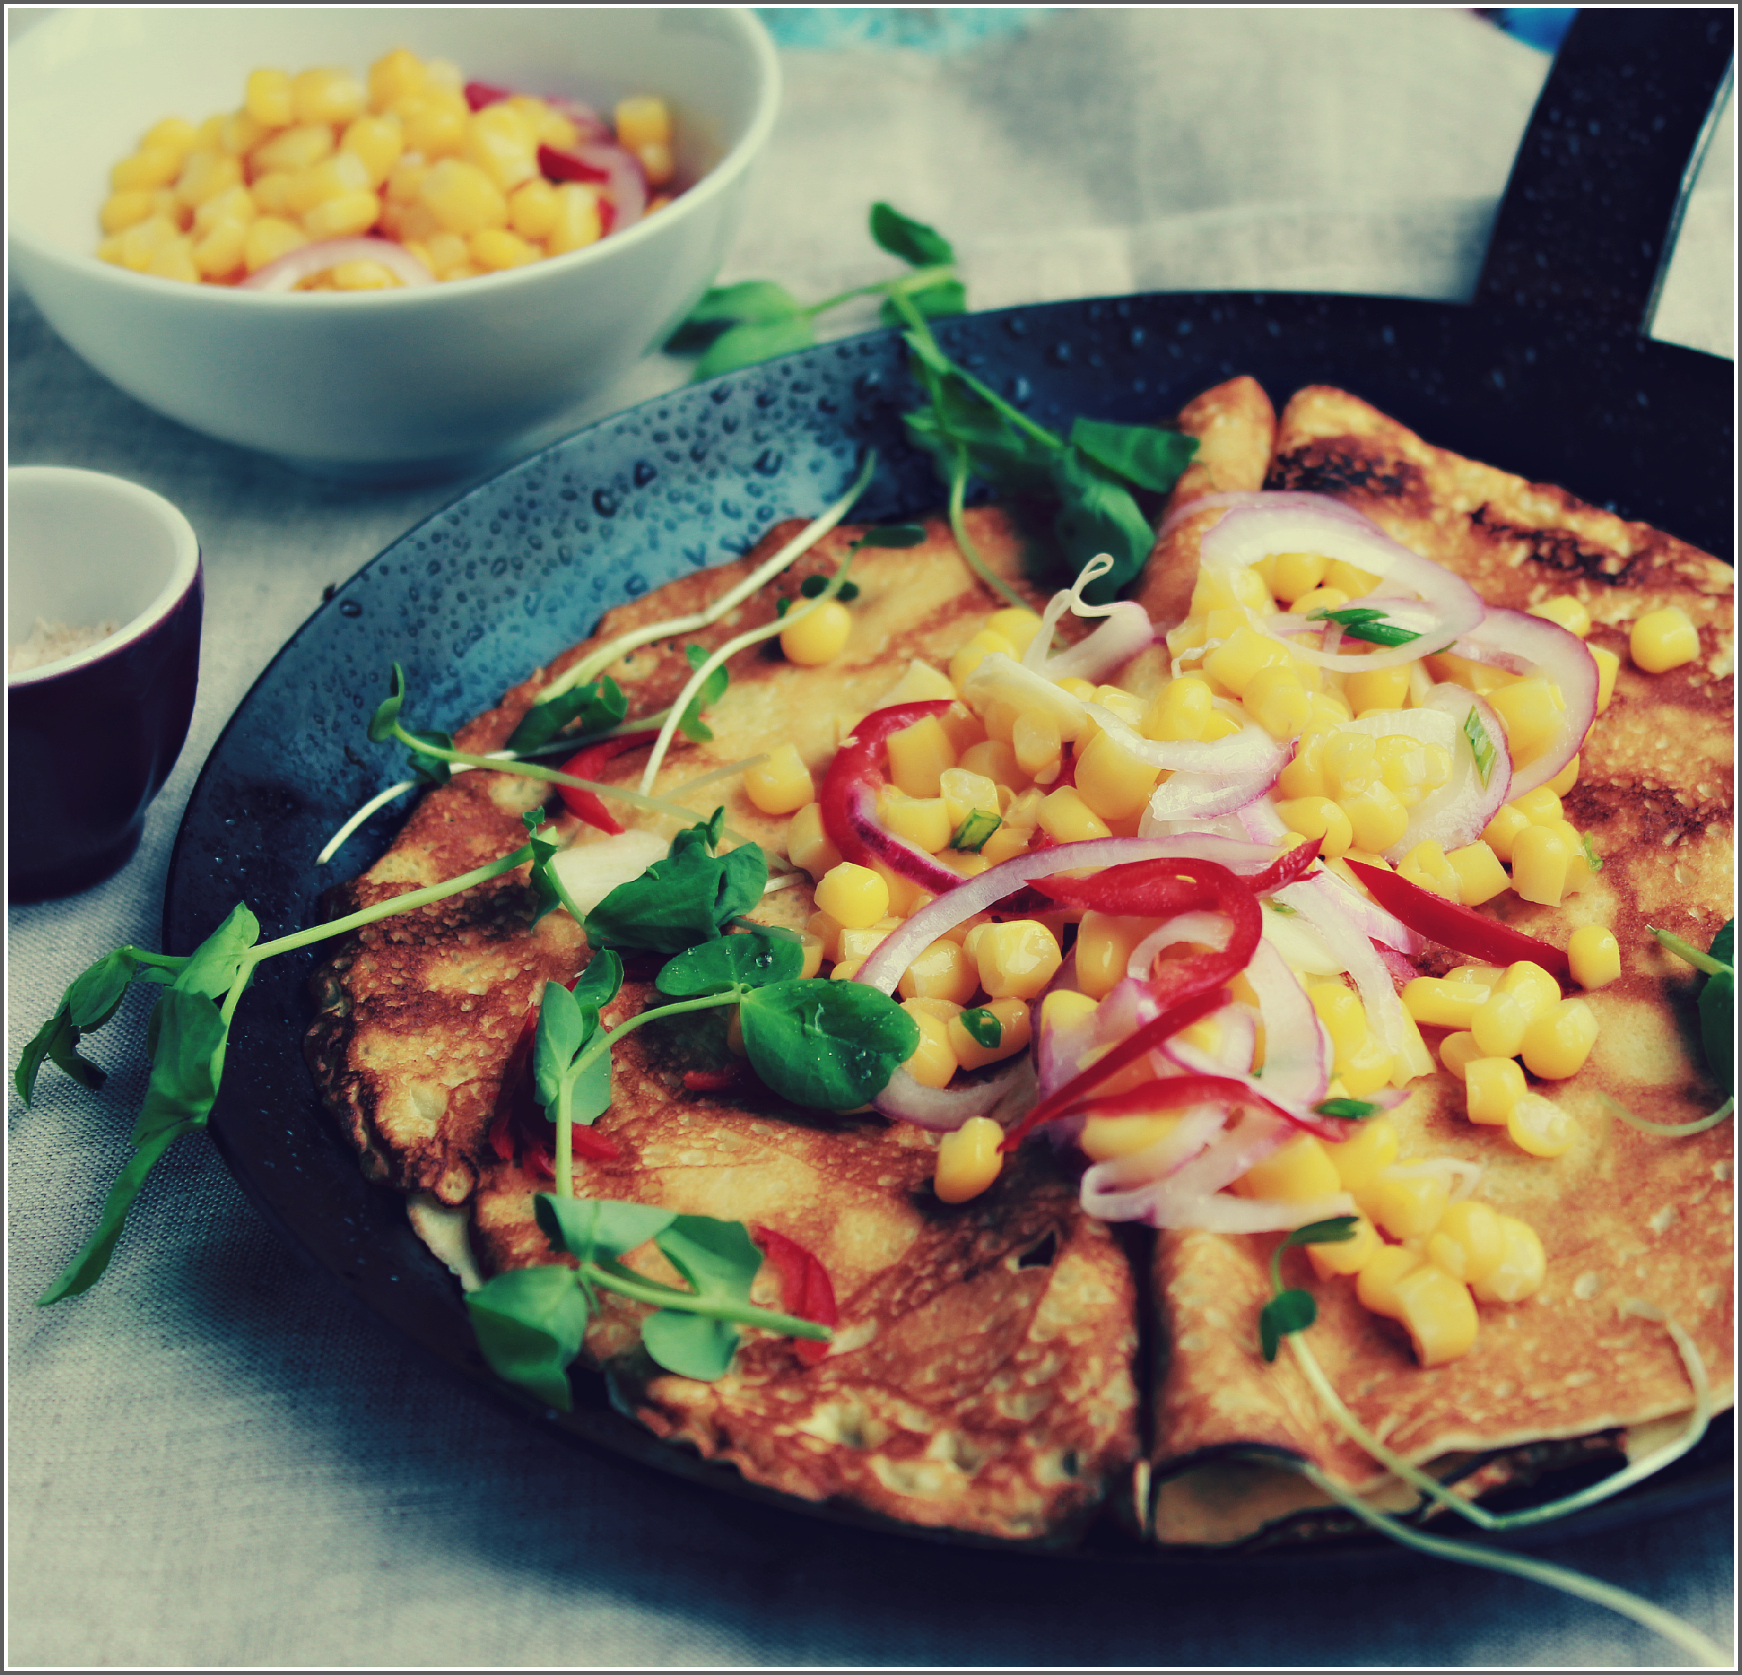 Crepes with Corn Salsa and Linen by Dena T. Bray©